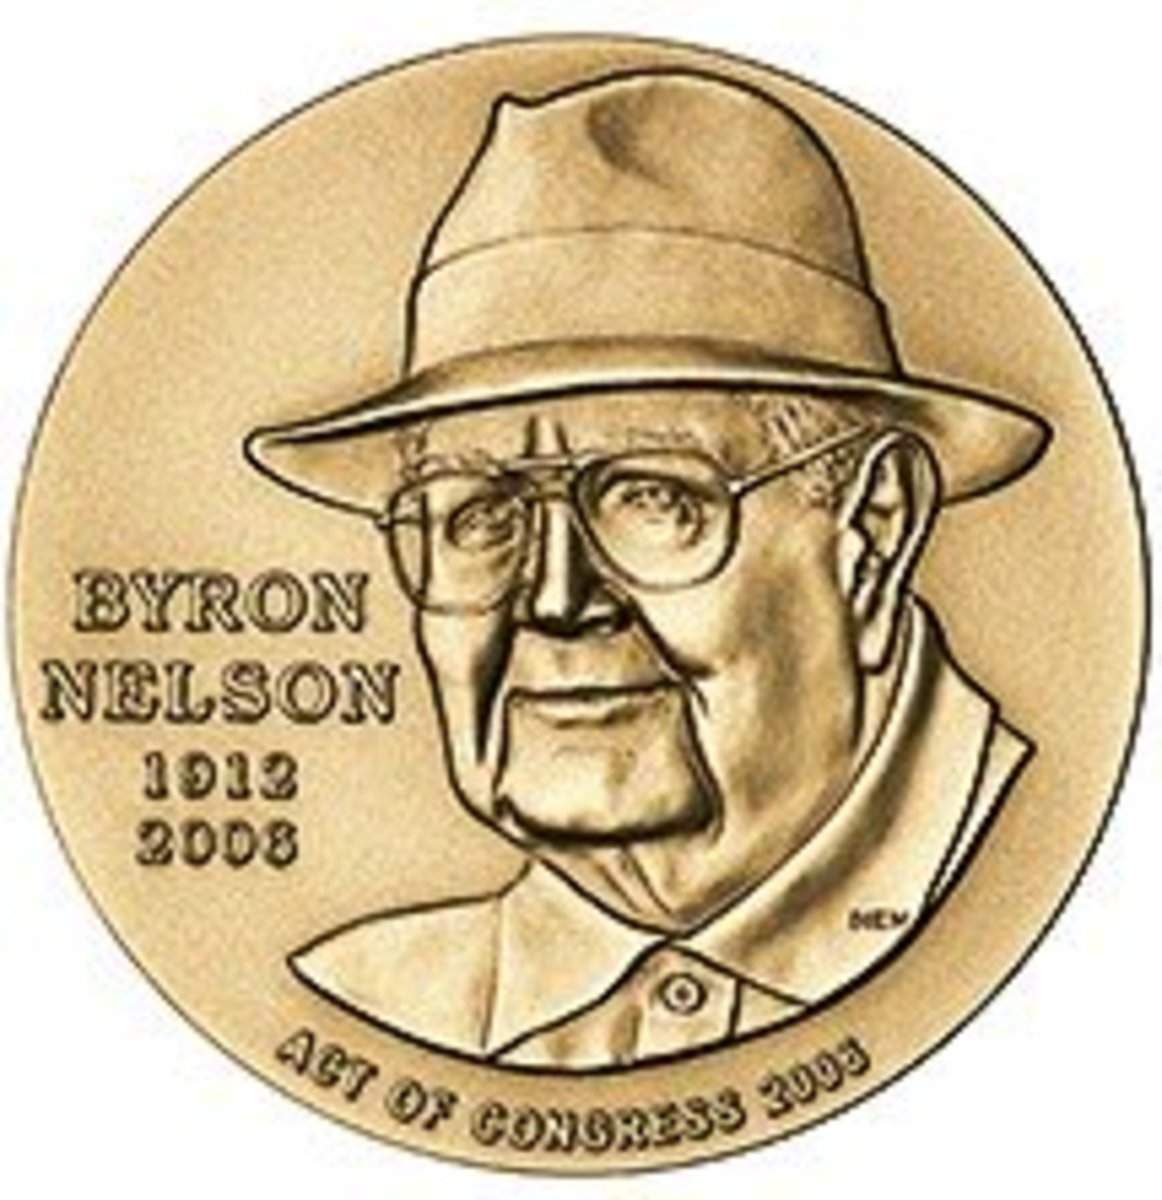 Congressional Medal Depicting Byron Nelson